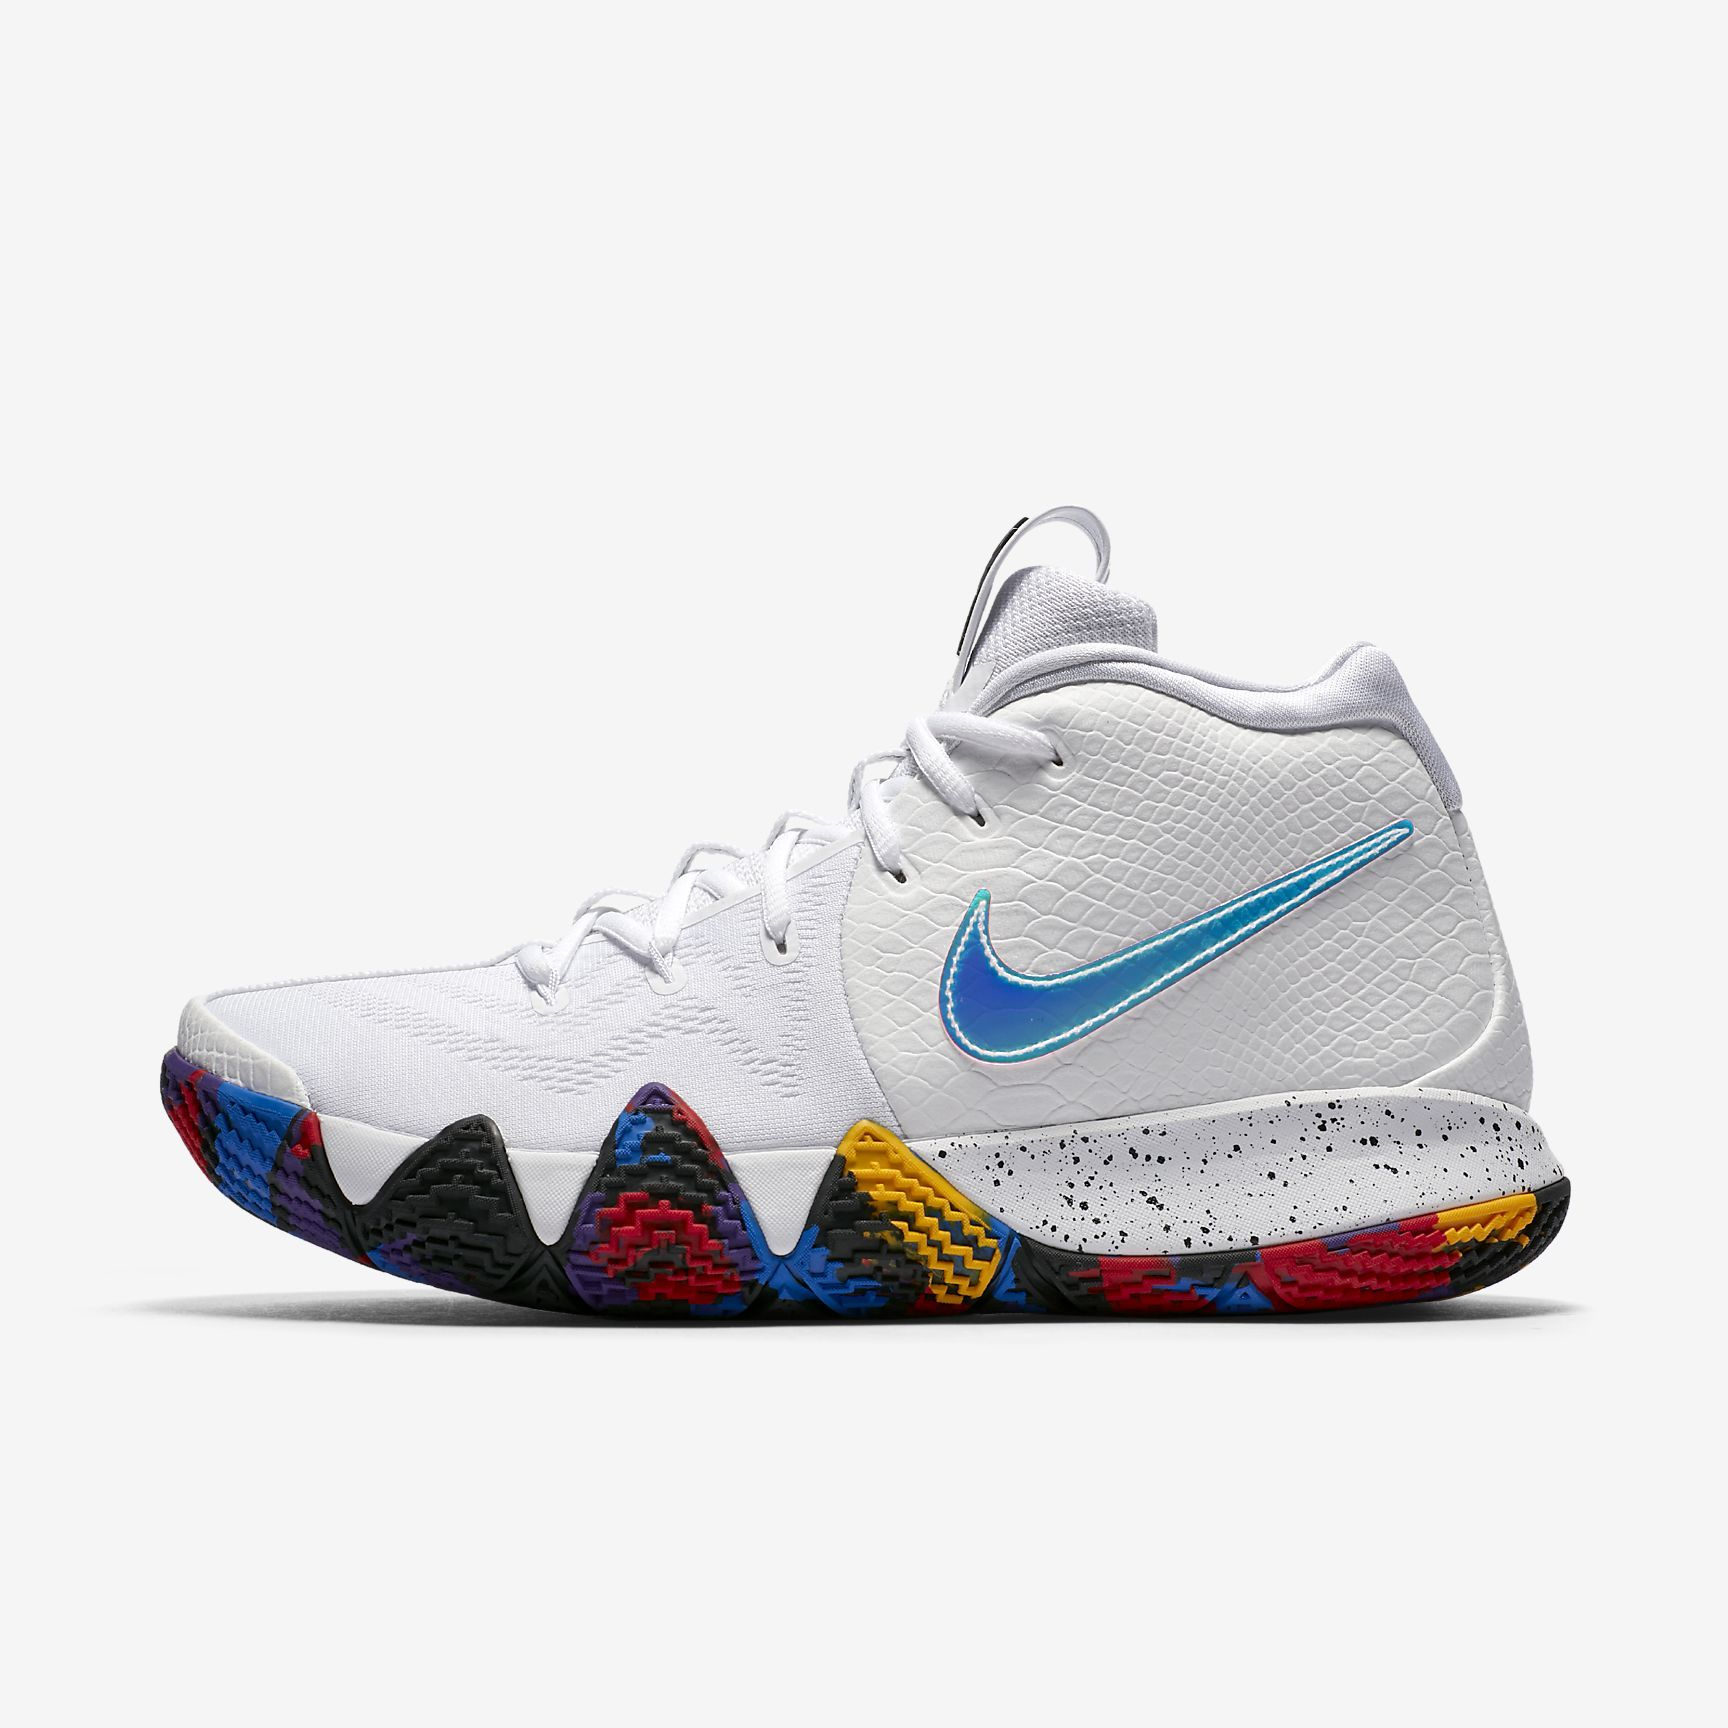 ec09a351095 Kyrie 4 The Moment Basketball Shoe